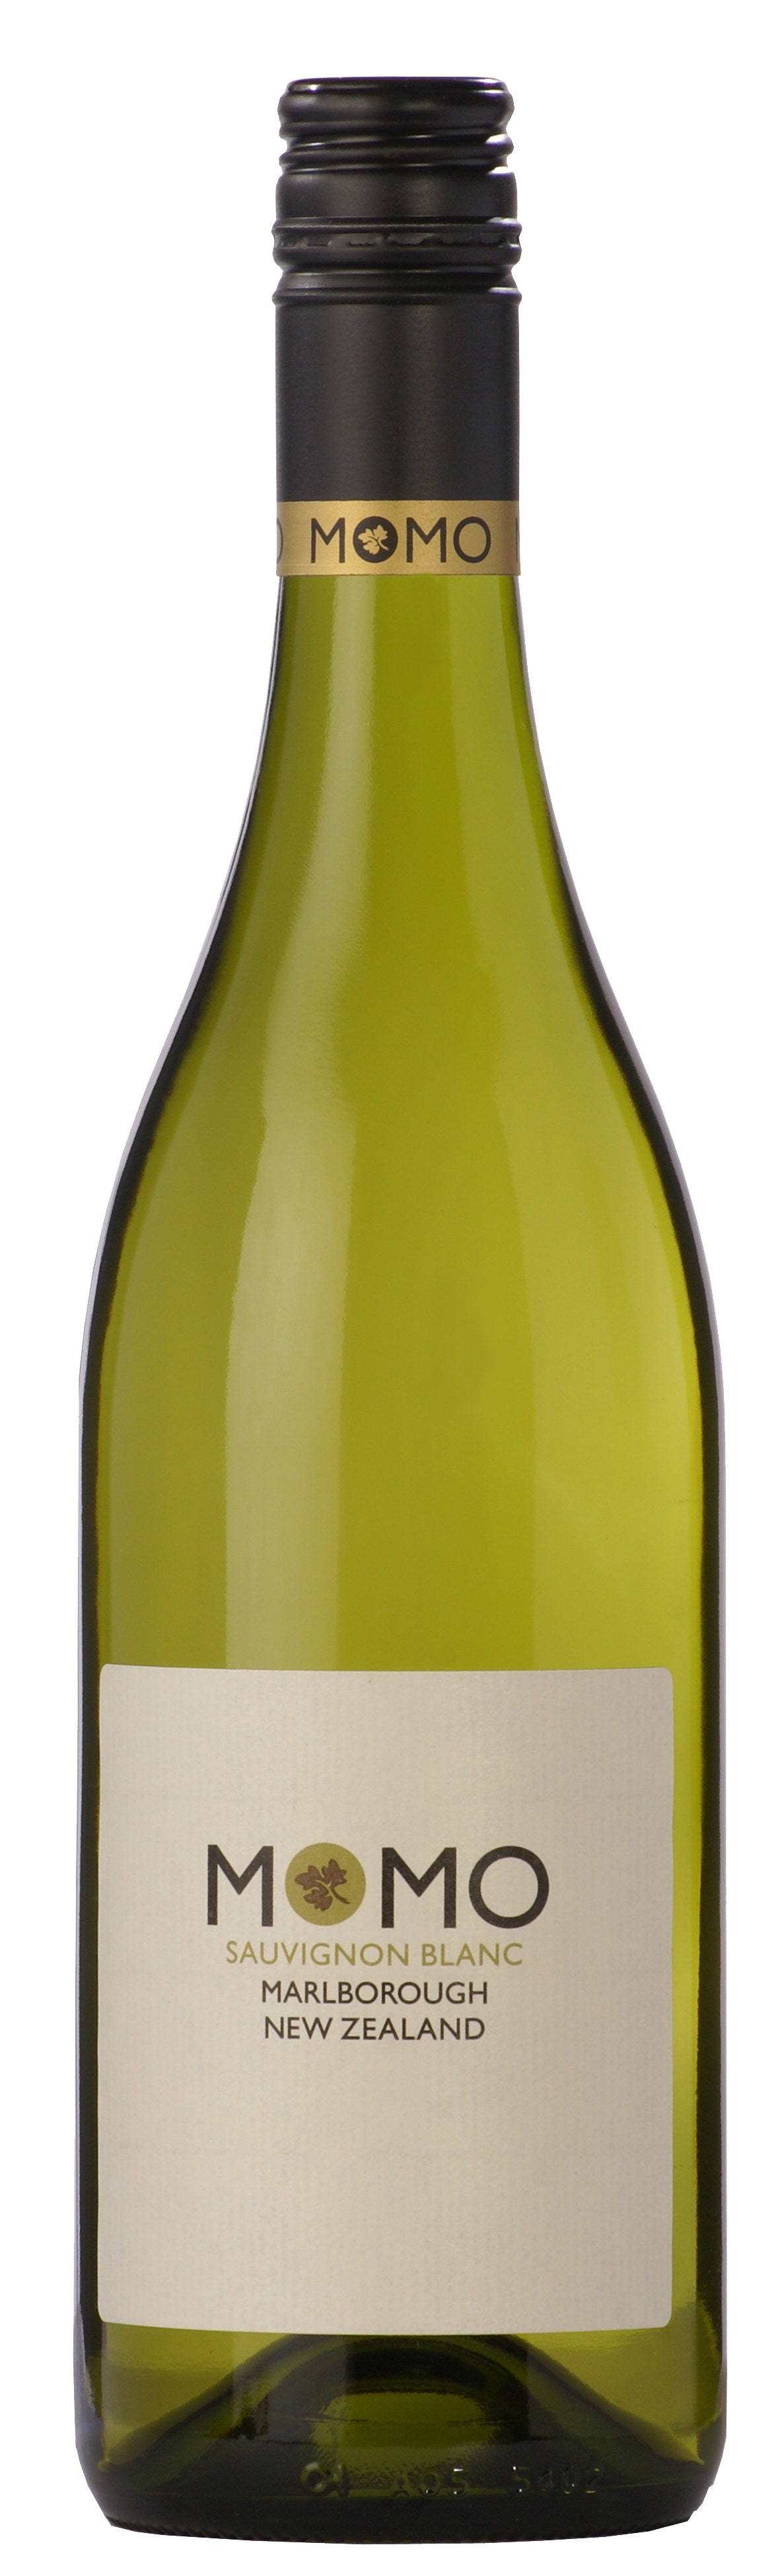 Momo Sauvignon Blanc, Marlborough